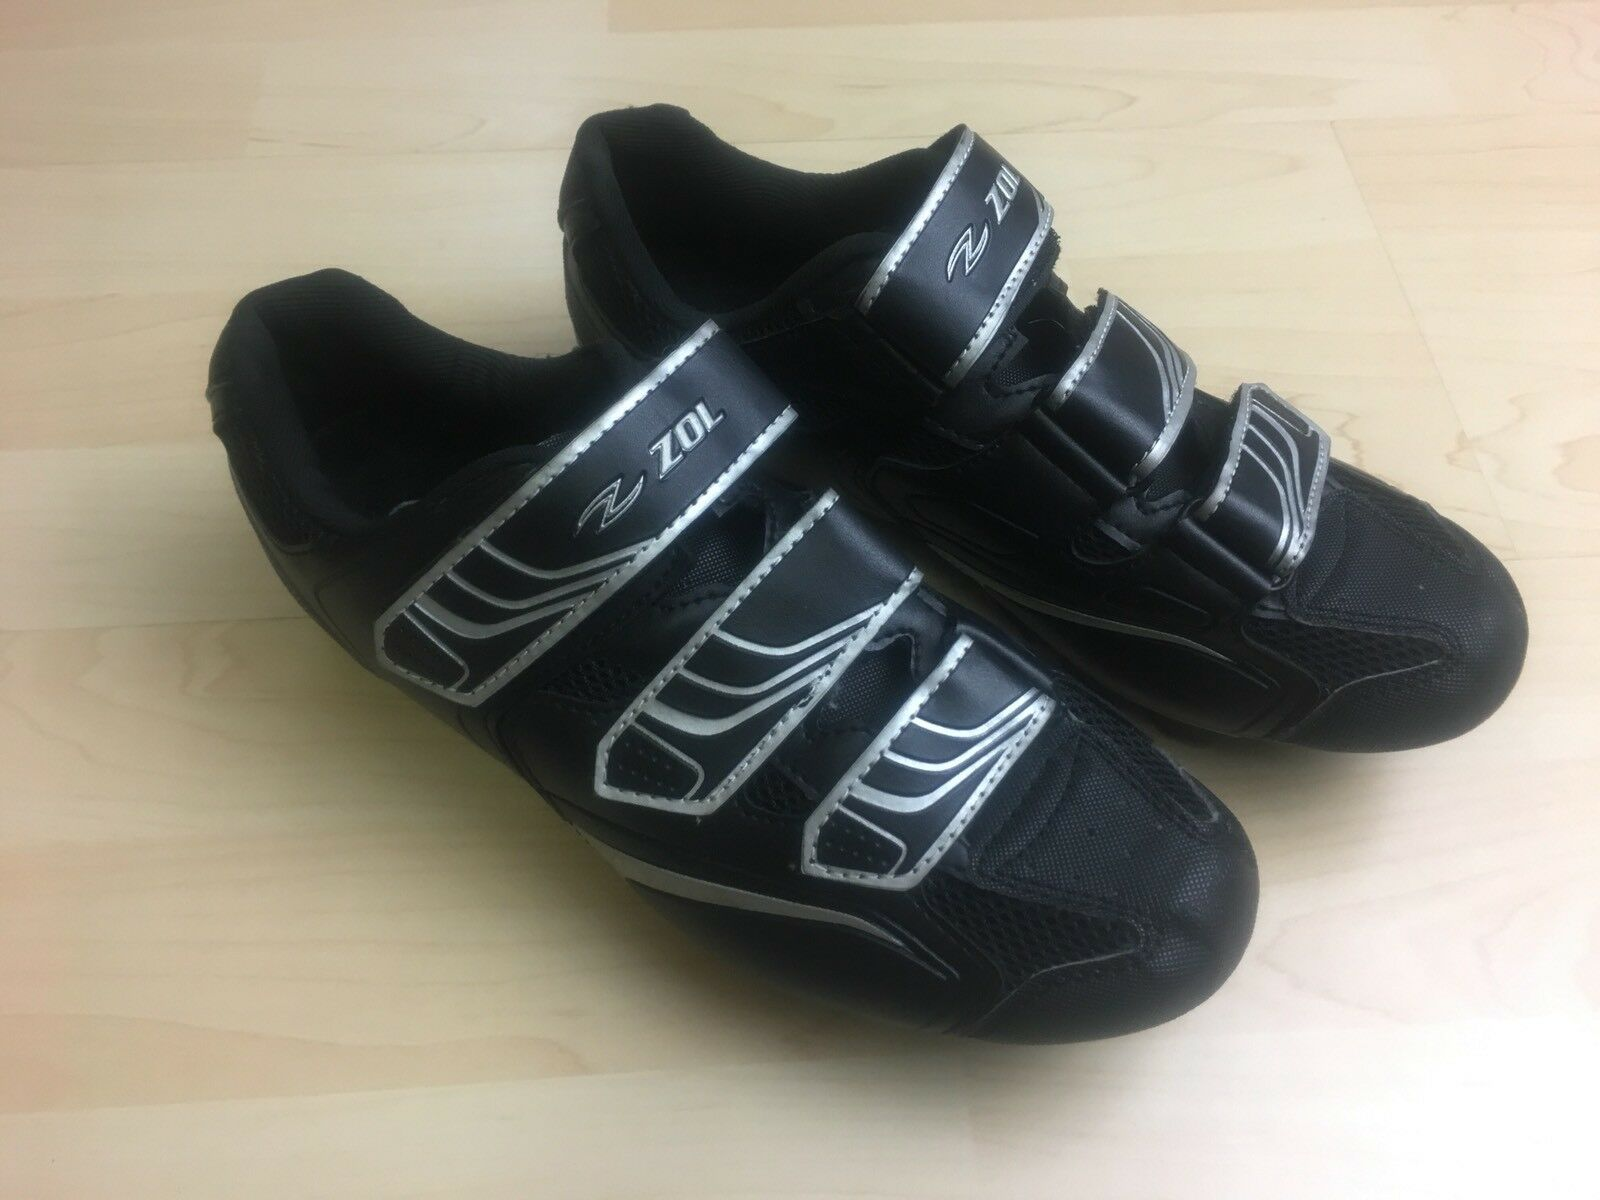 Zol Mountain Bike Men Size 7.5 US 40 EU 6.5 UK Cleated Cycling shoes w SPD Black